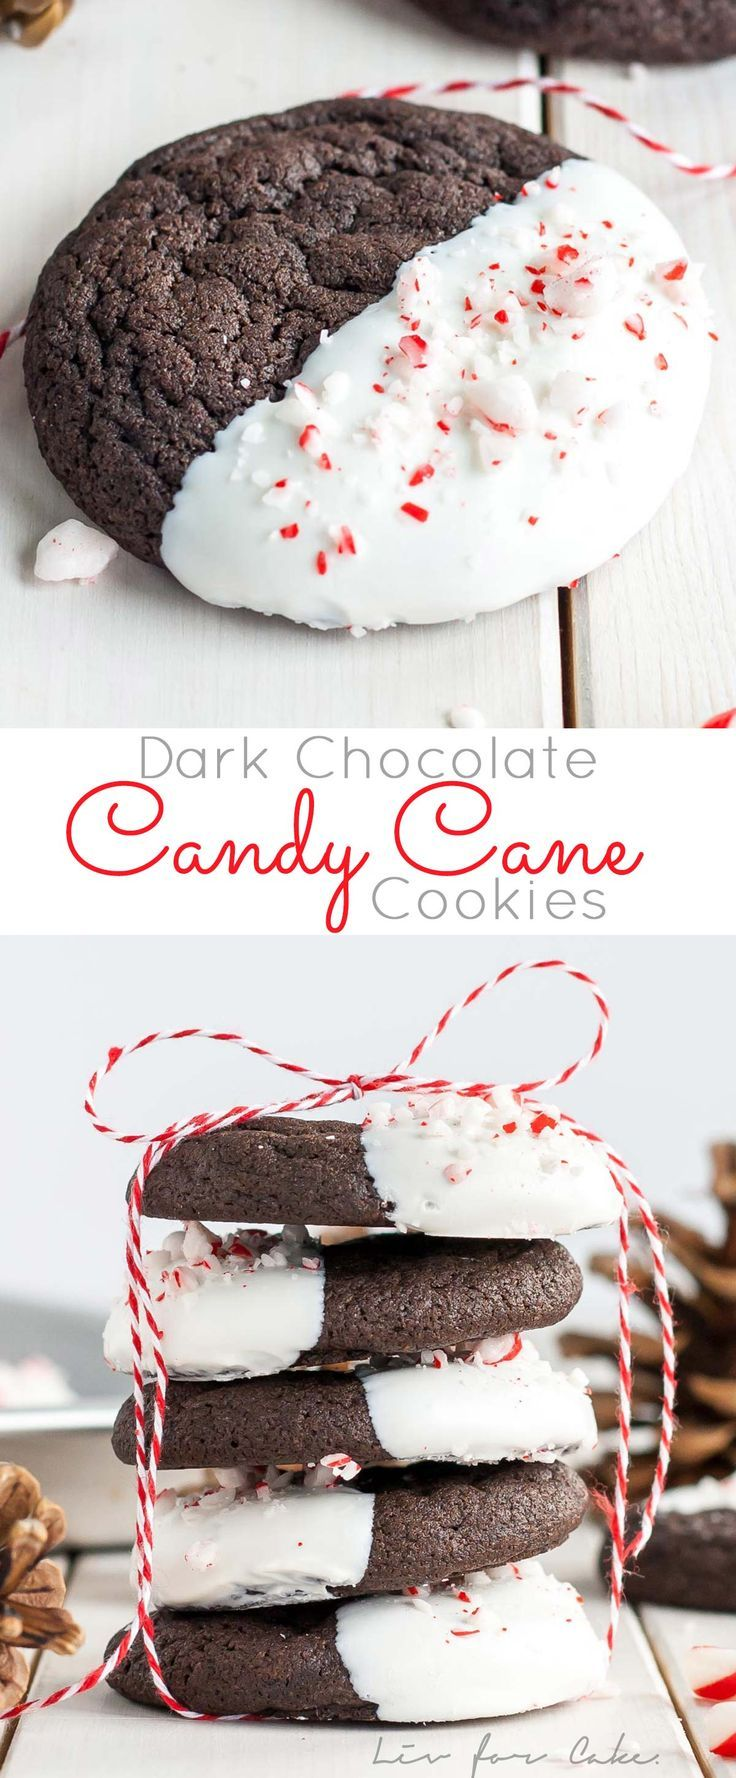 Dark Chocolate Candy Cane Cookies #holidaytreats